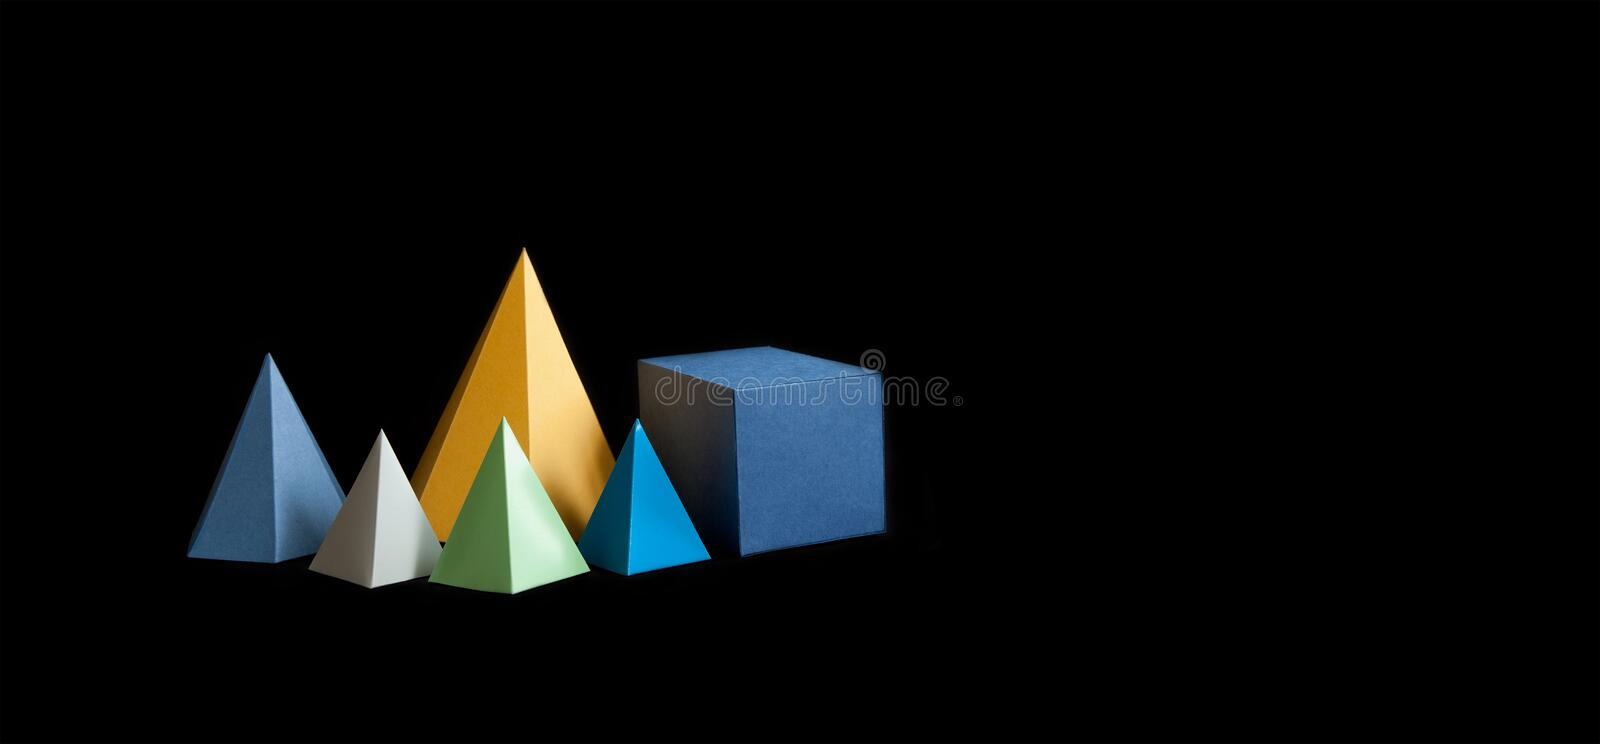 Colorful minimalistic composition abstract geometric solid figures on black background. Pyramid prism rectangular cube. Yellow blue pink green colored figures stock photography